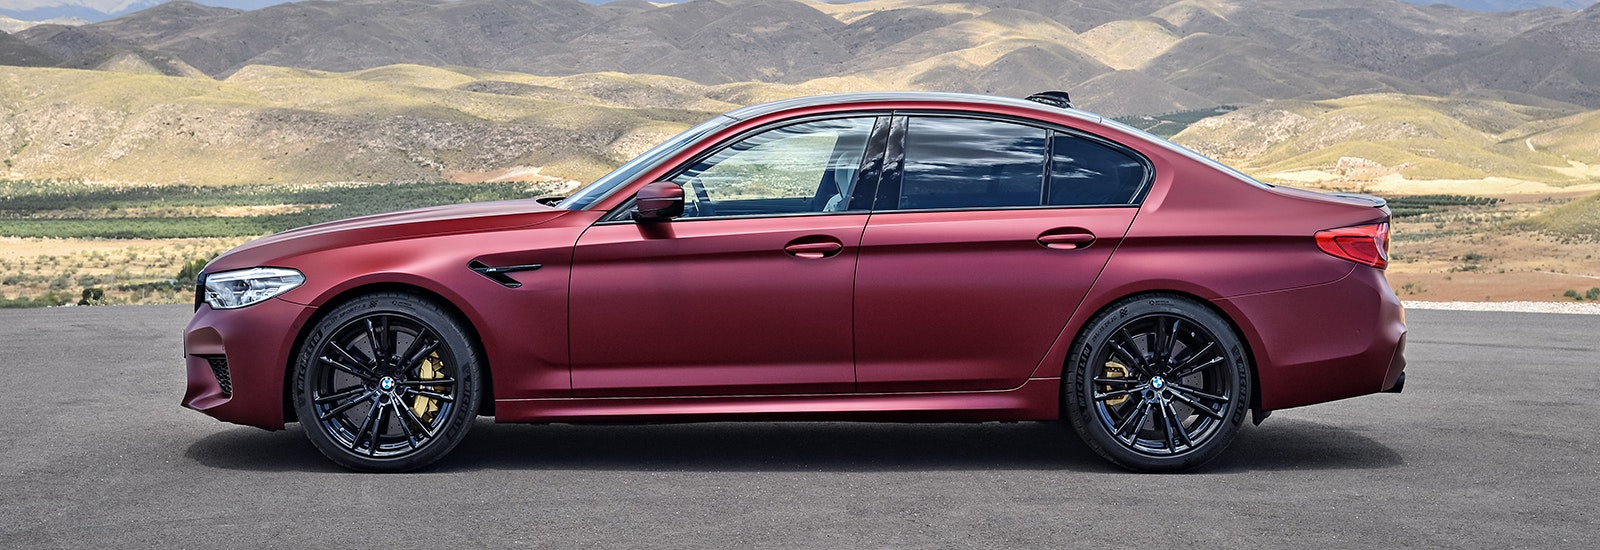 2017 Bmw M5 Price >> 2018 Bmw M5 Price Specs And Release Date Carwow